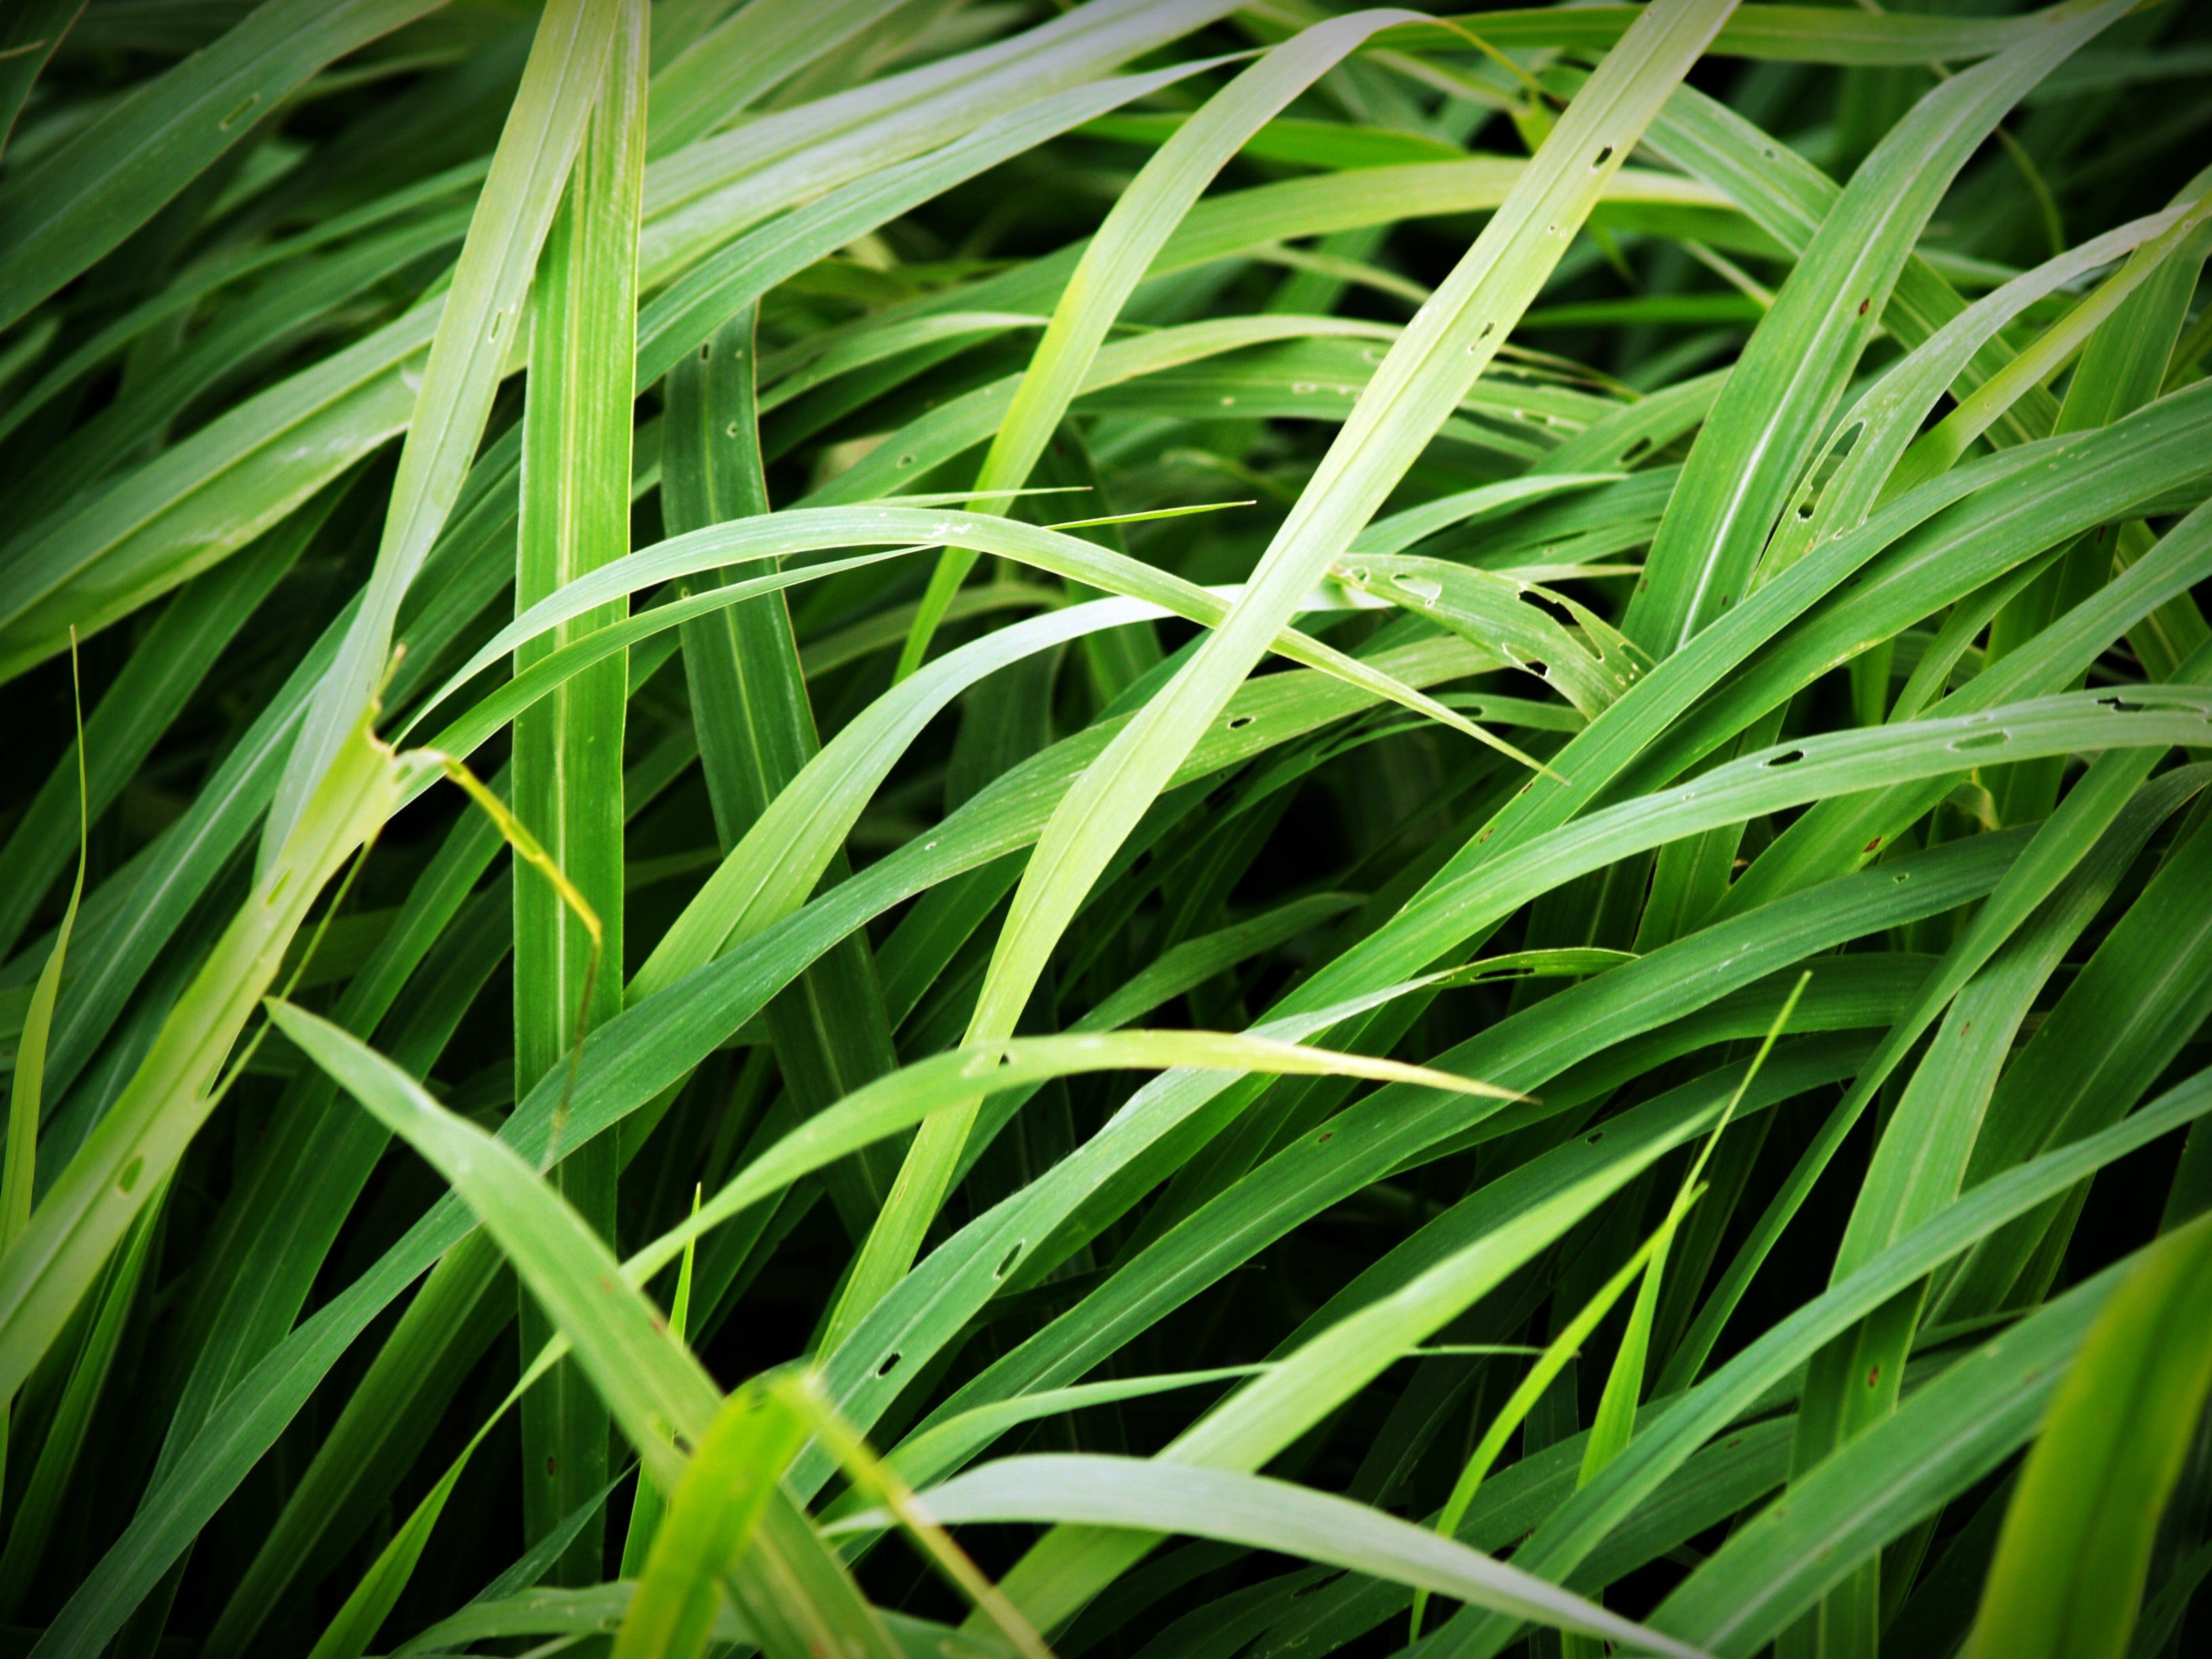 Green Tall Grass